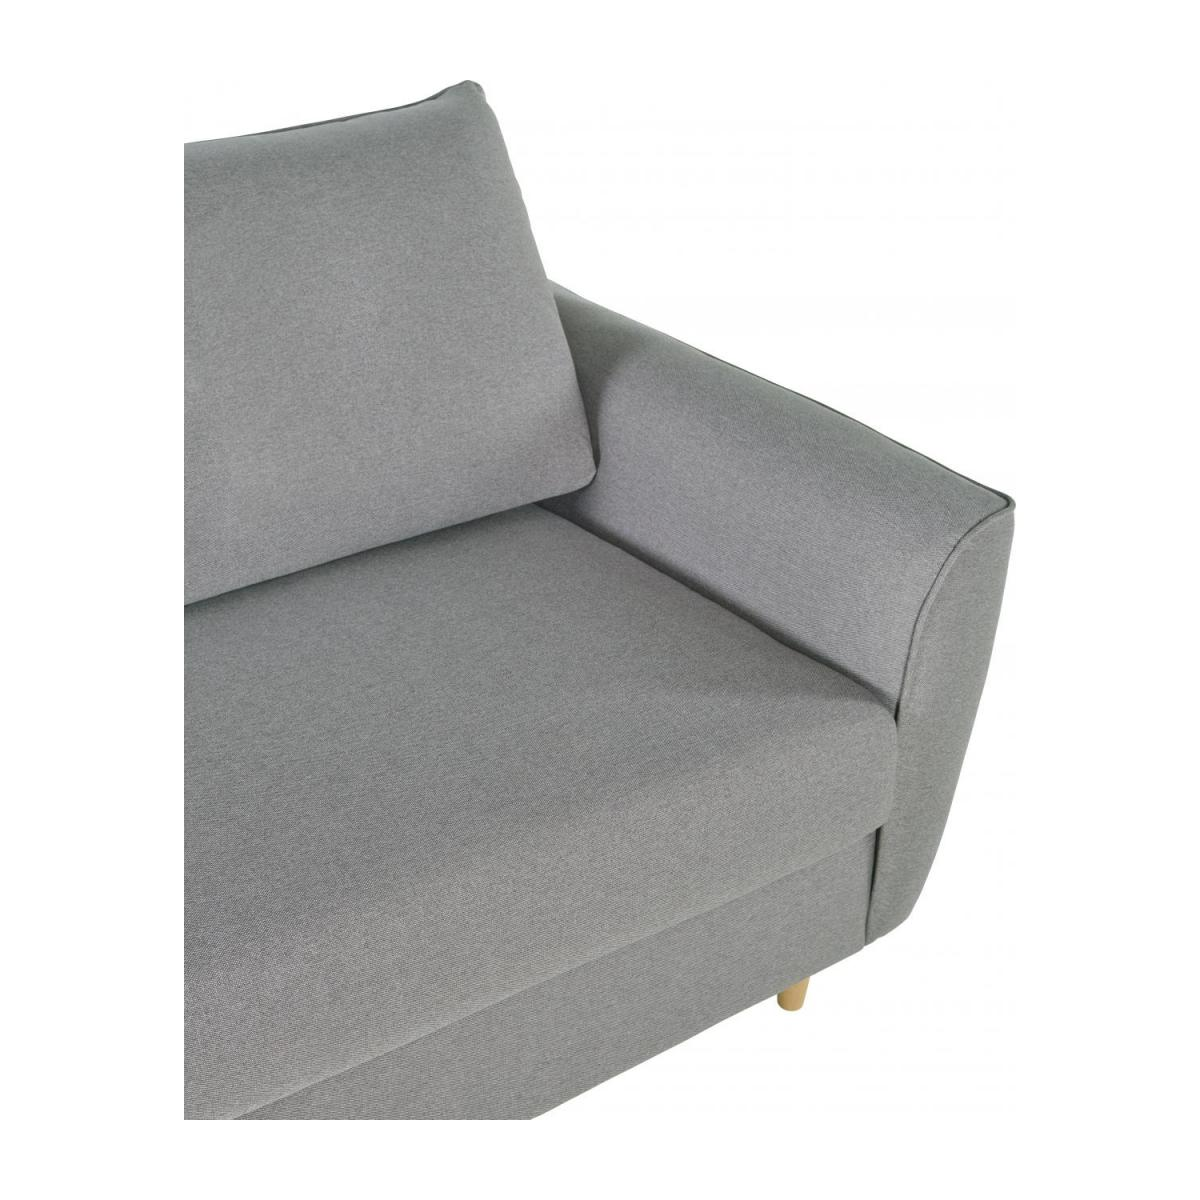 3 seater Fabric Sofa Bed Light Grey n°5